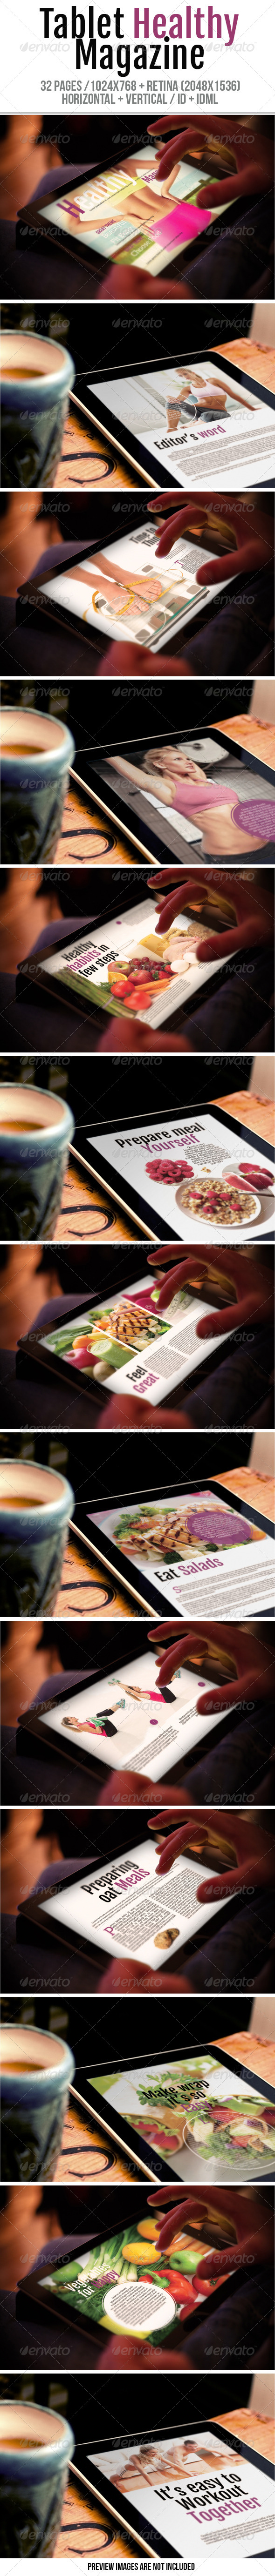 GraphicRiver Tablet Healthy Magazine 7262611